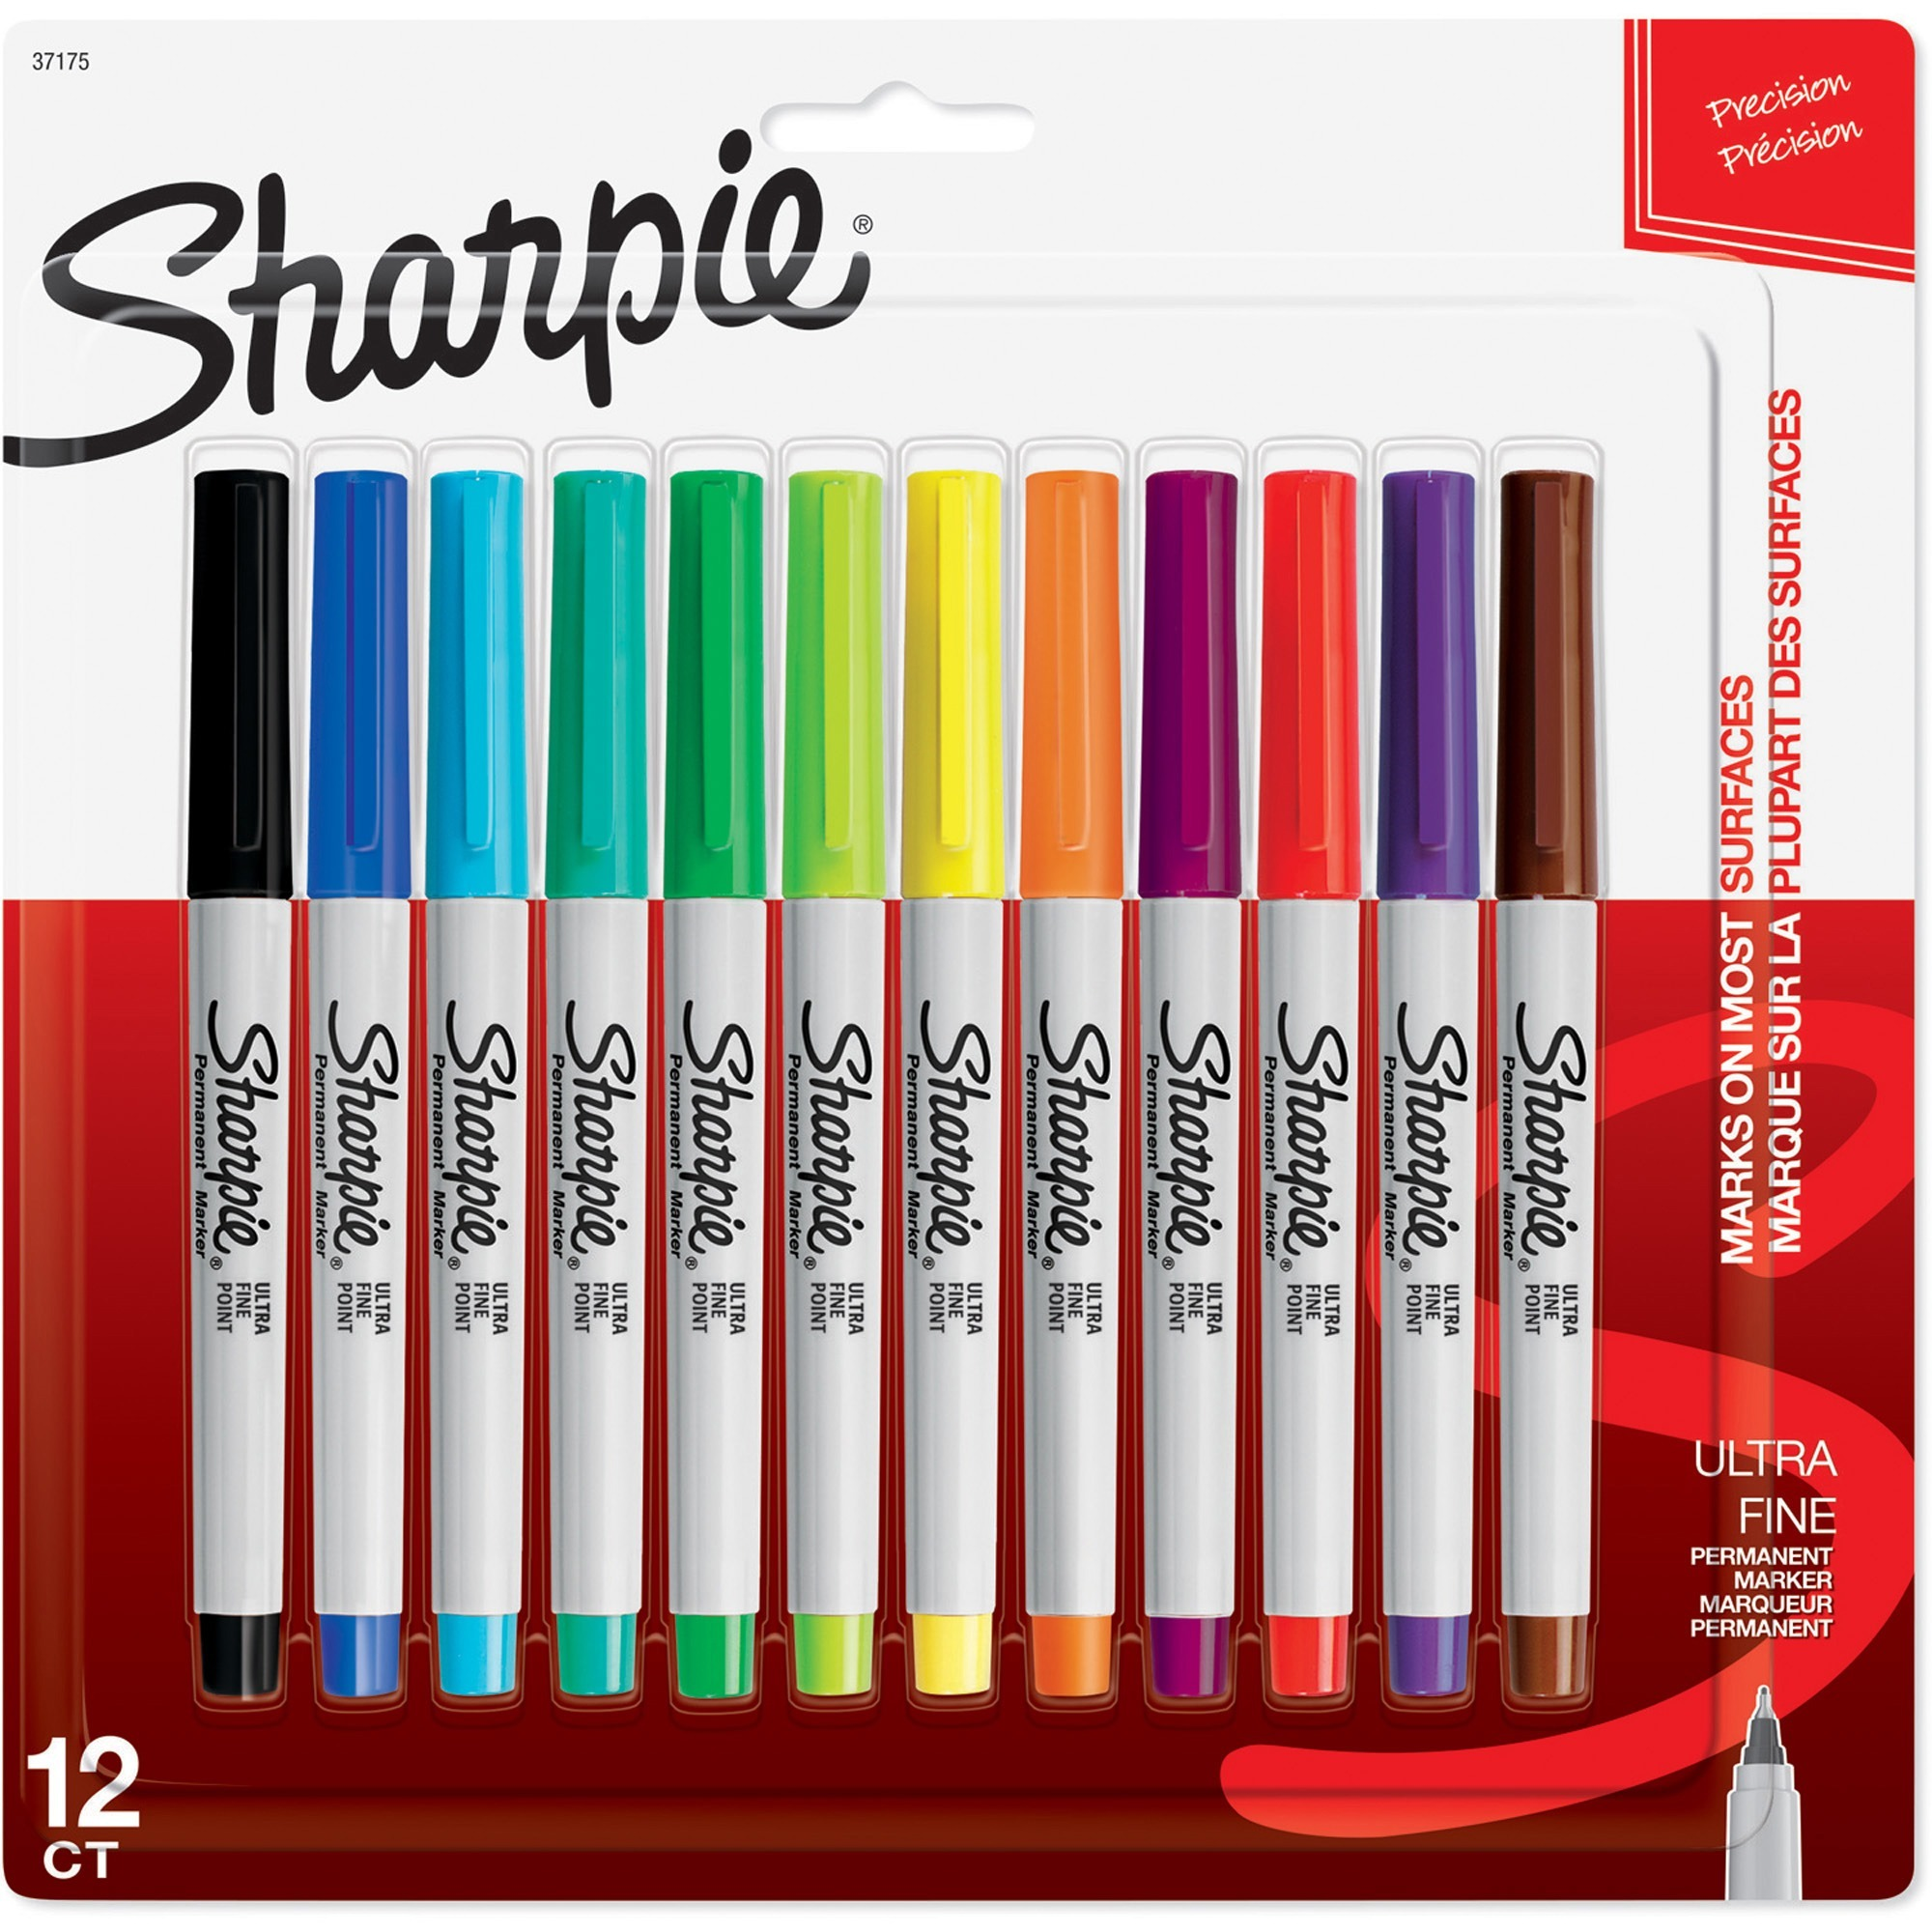 Sharpie 37175PP Permanent Marker - Madill - The Office Company